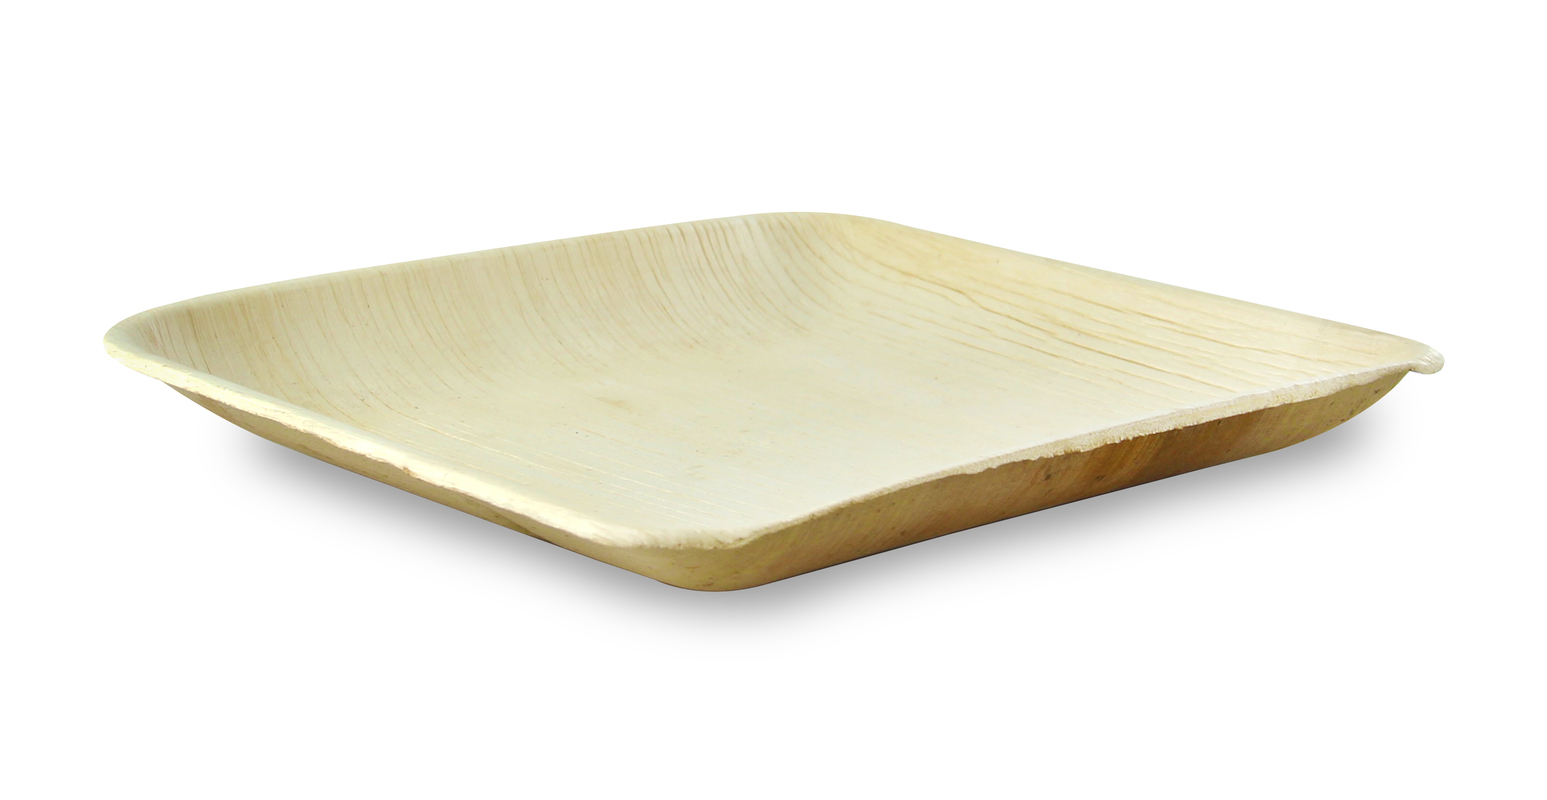 Square Palm Leaf Plate With Rounded Corners - 8 x 8 in.